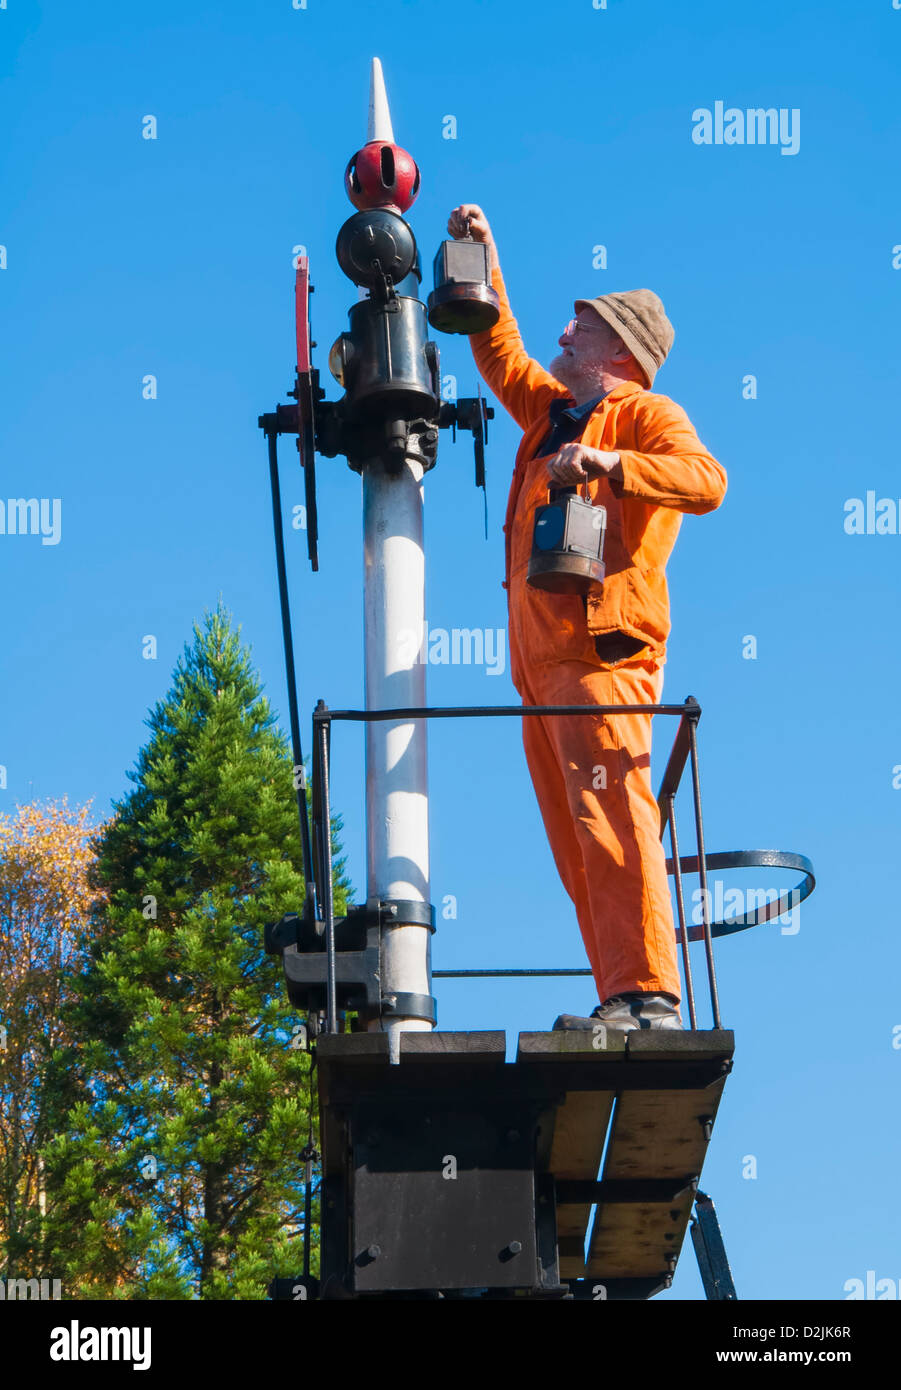 Steam railway enthusiast changing the signal lantern at the South Devon Railway's Buckfastleigh station - Stock Image